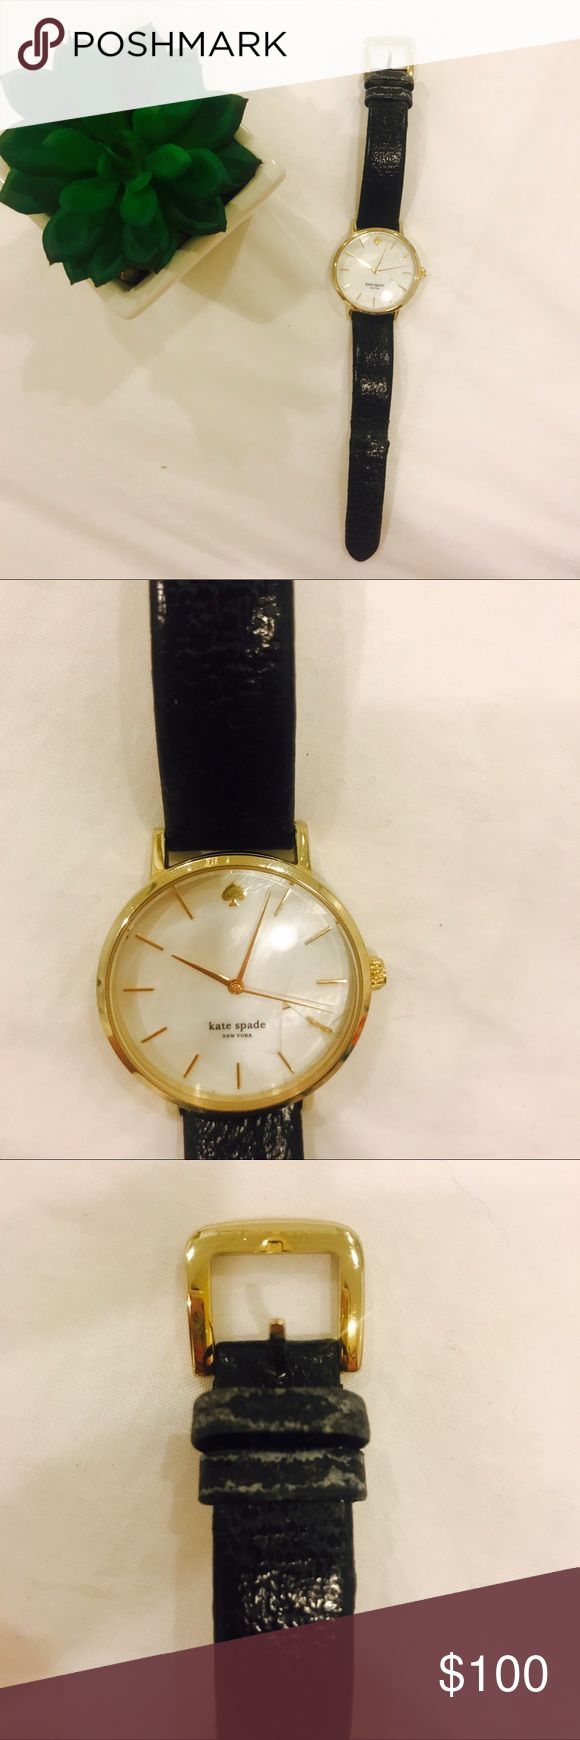 Kate Spade Women's Metro black leather strap watch Kate Spade Women's Metro black leather strap watch 34mm. Mother of pearl face is cracked as the pictures show. But the watch works perfectly! Leather strap is stretched a little. Scratches on the back of the face of the watch (see pictures). Leather is worn out and looks used (look at pictures). Great watch, works perfectly. And is a timeless piece even if it's worn out. kate spade Accessories Watches